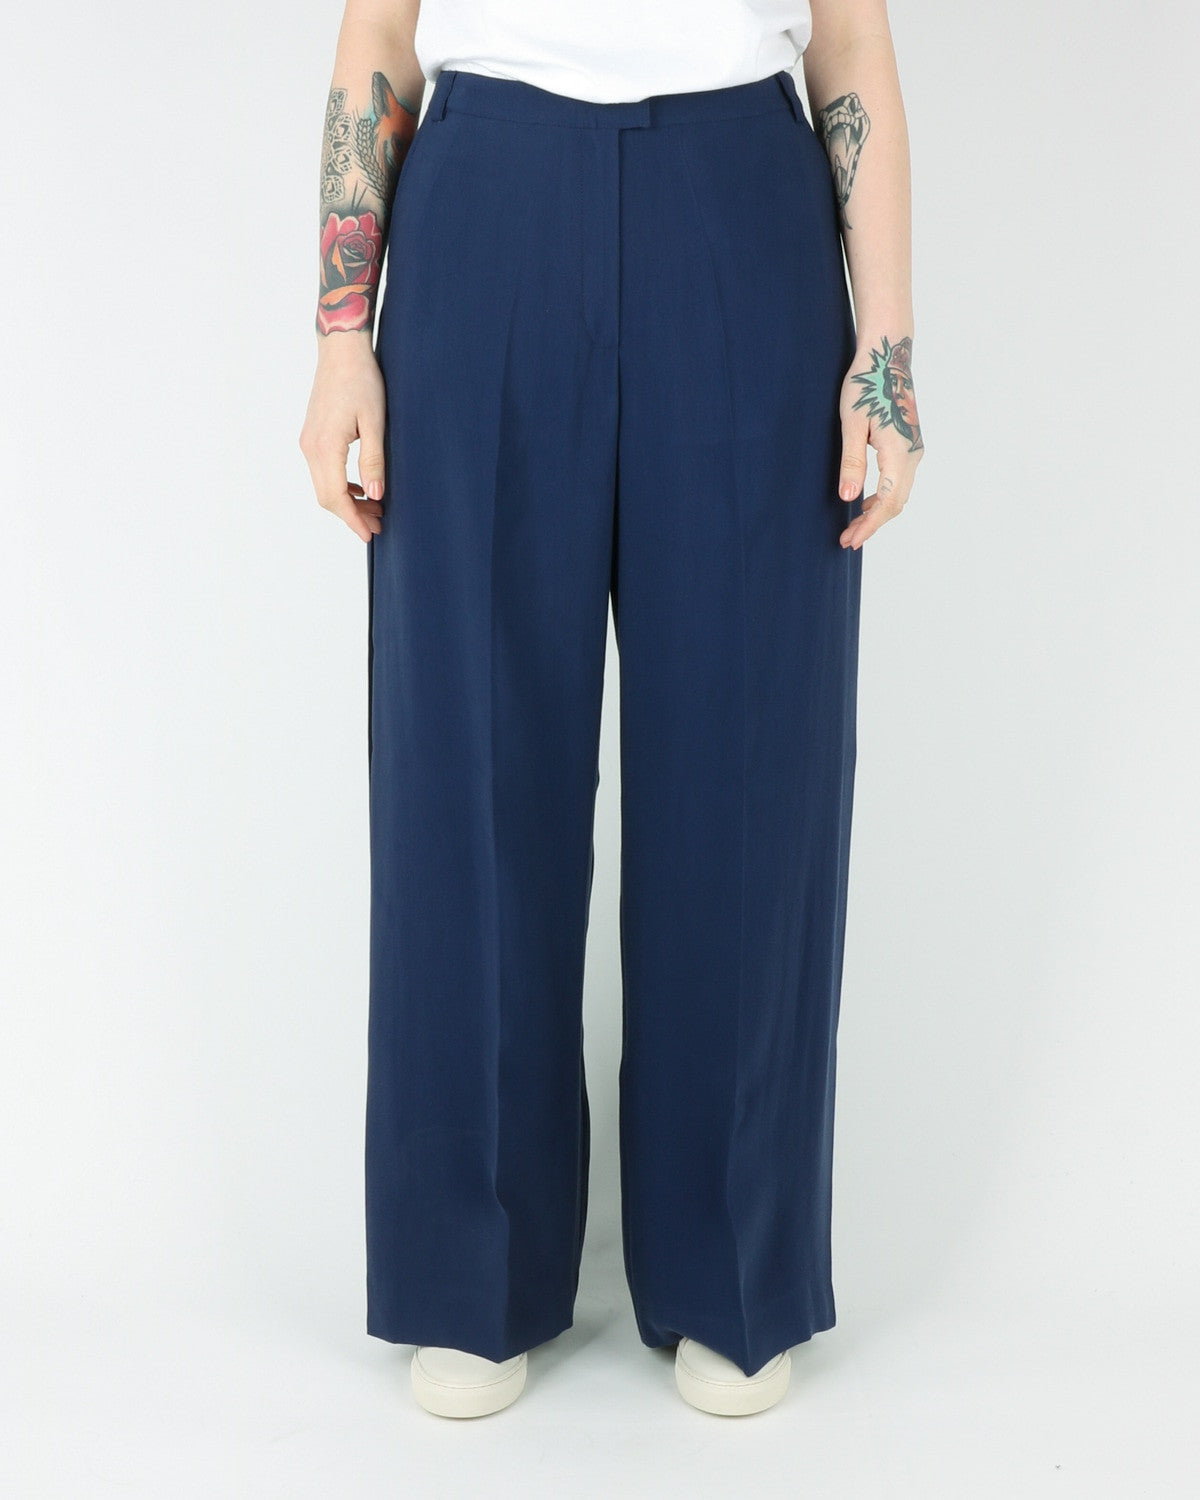 libertine libertine_day trousers_hq blue_view_1_3